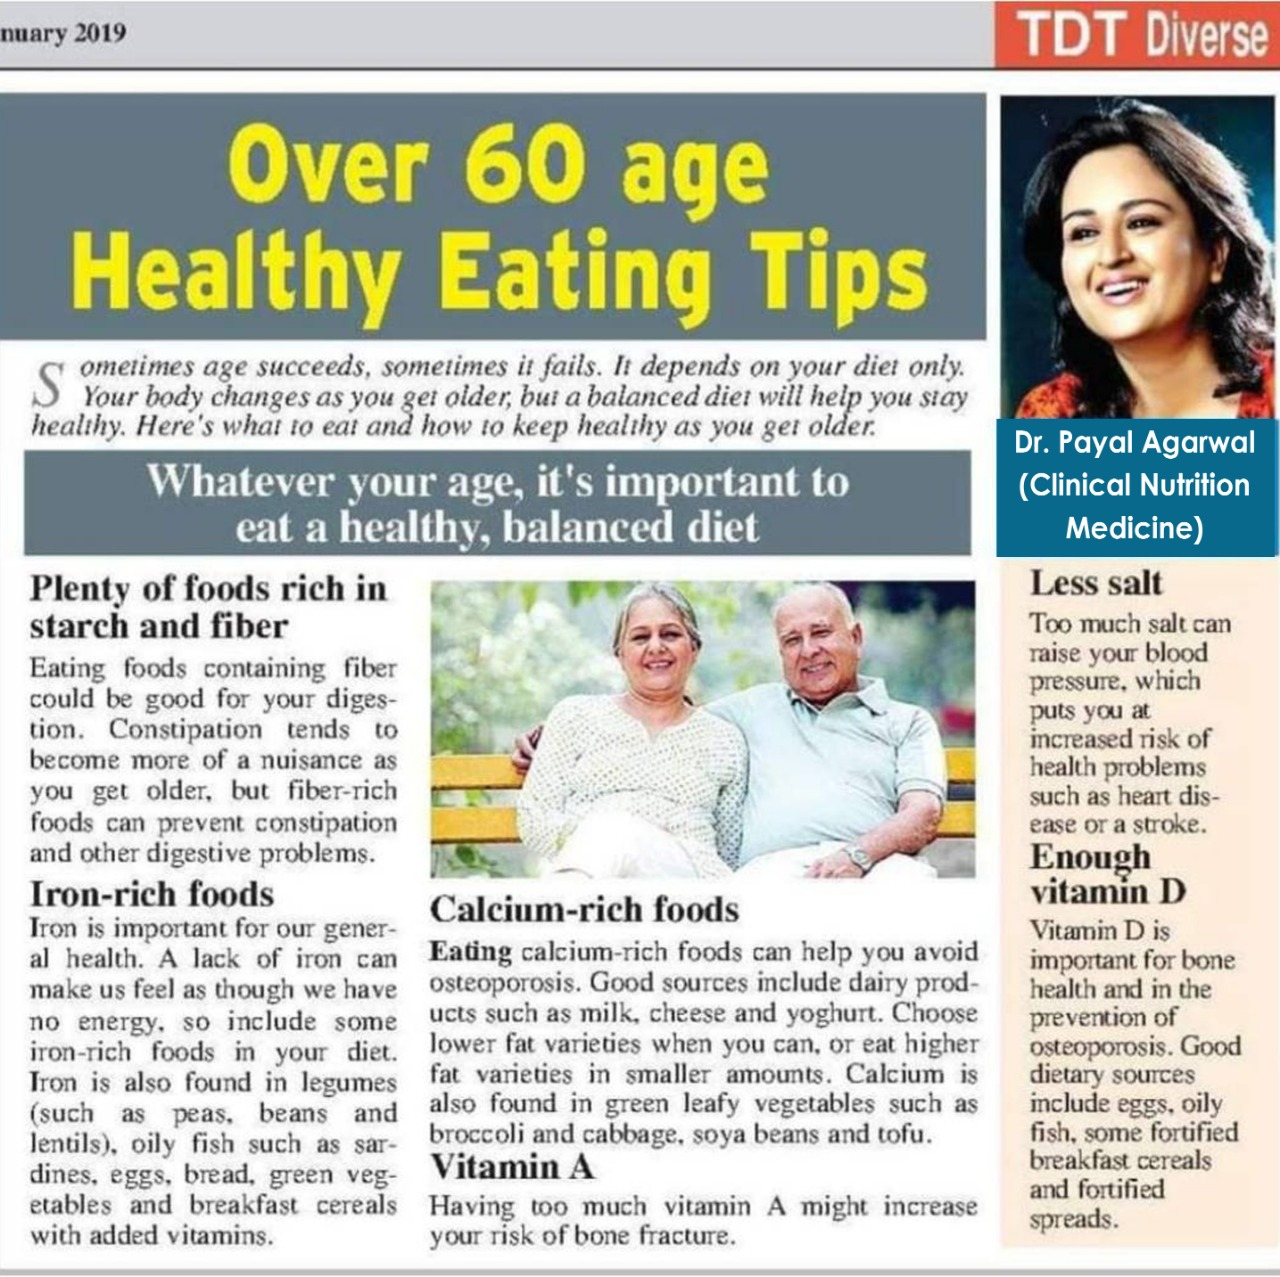 Over 60 Age - Healthy Eating Tips